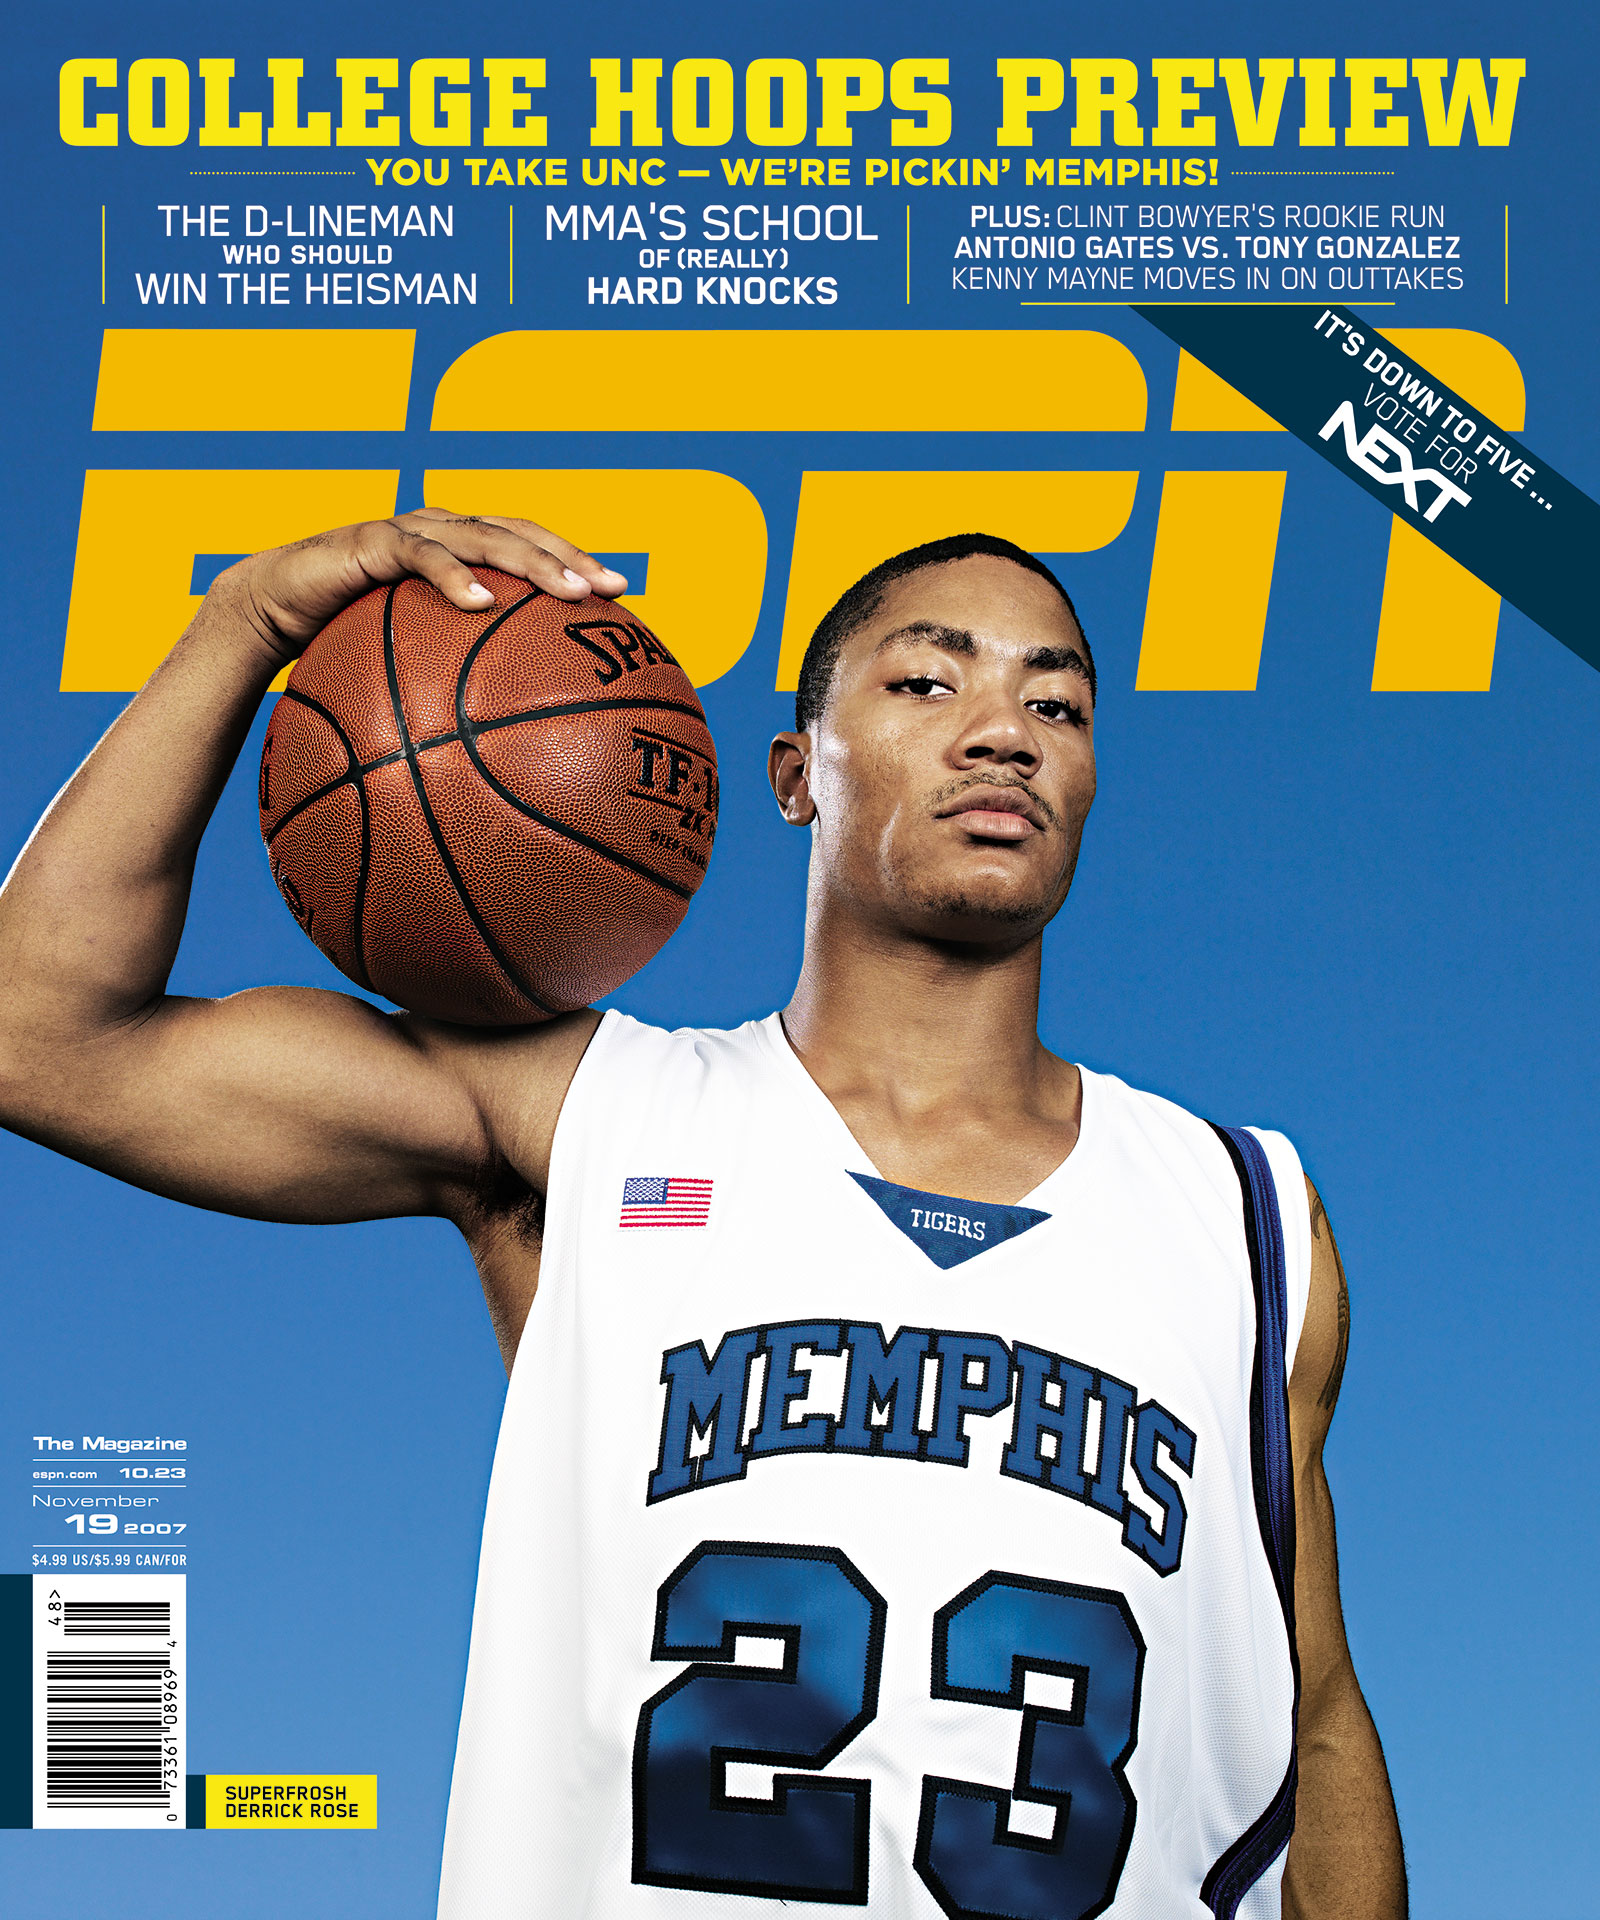 ESPN The Magazine 2007 Covers